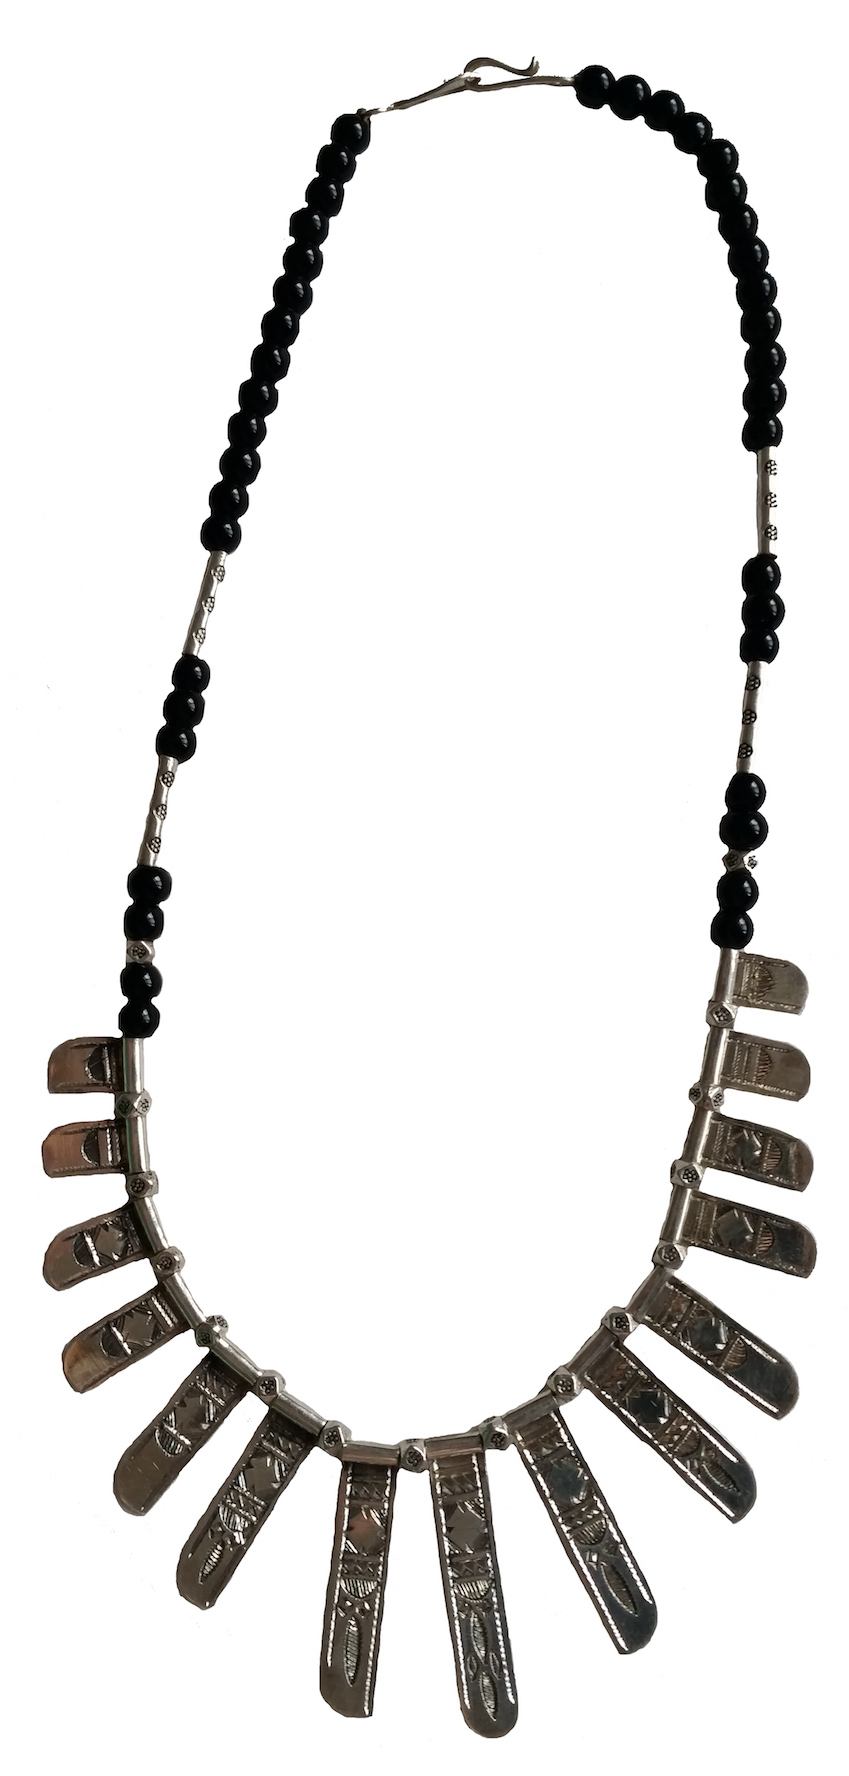 CHAT CHAT NECKLACE Handcast silver with etching by master Tuareg silversmiths finished with glass beads.